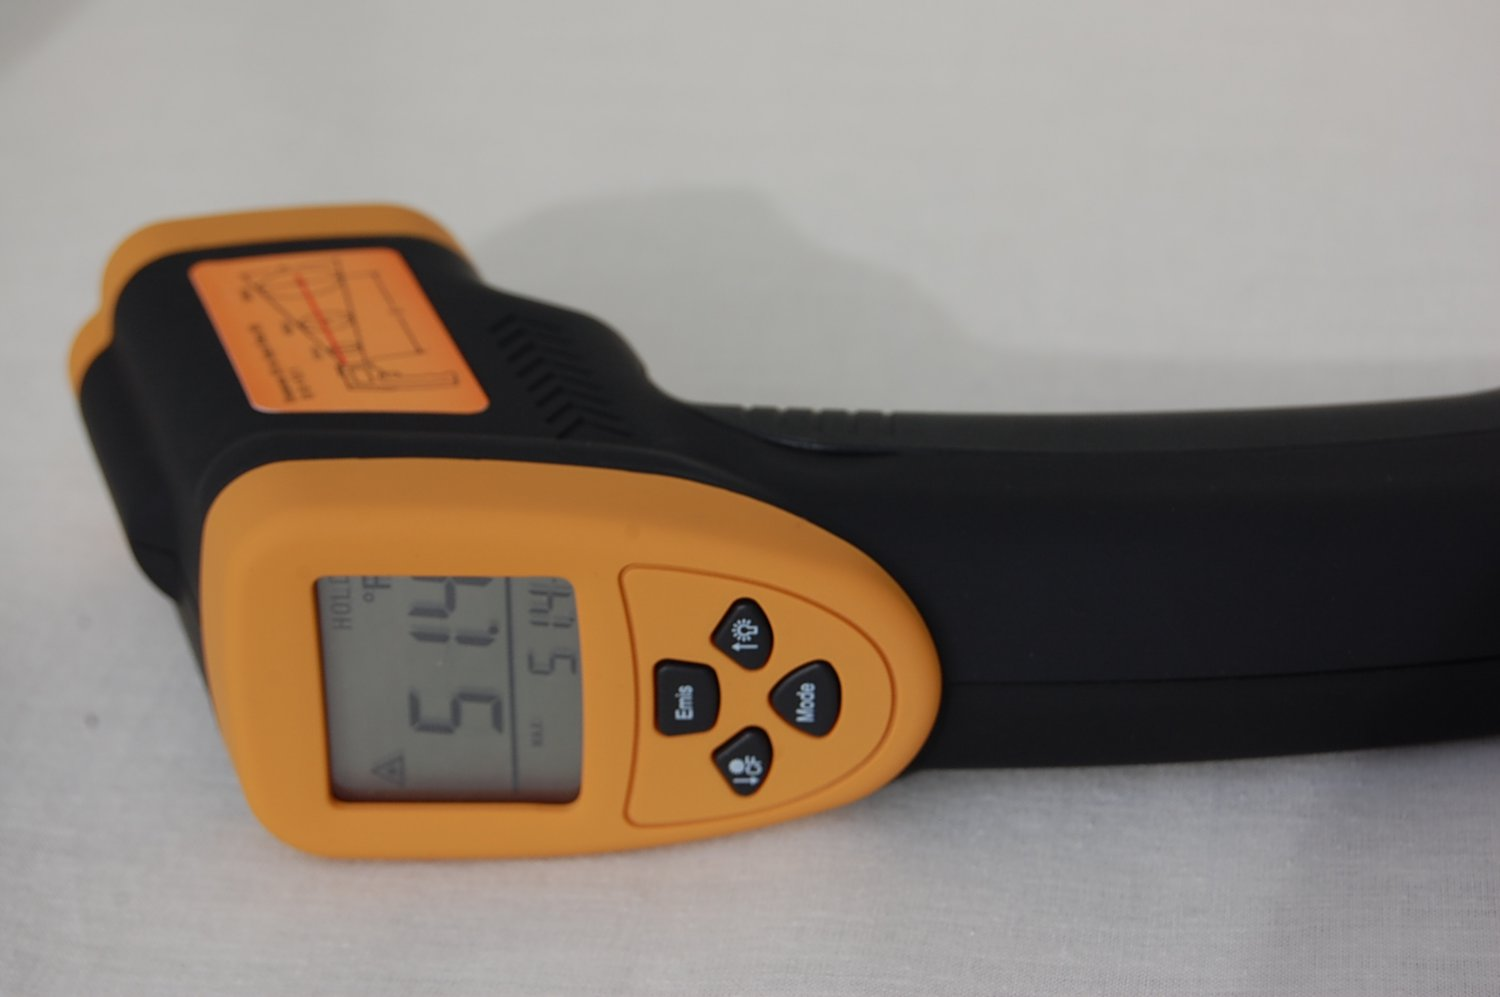 InfraRed Digital Thermometer Non-Contact Accurate 12:1(D:S) -50 to 1100 F HVAC Tool